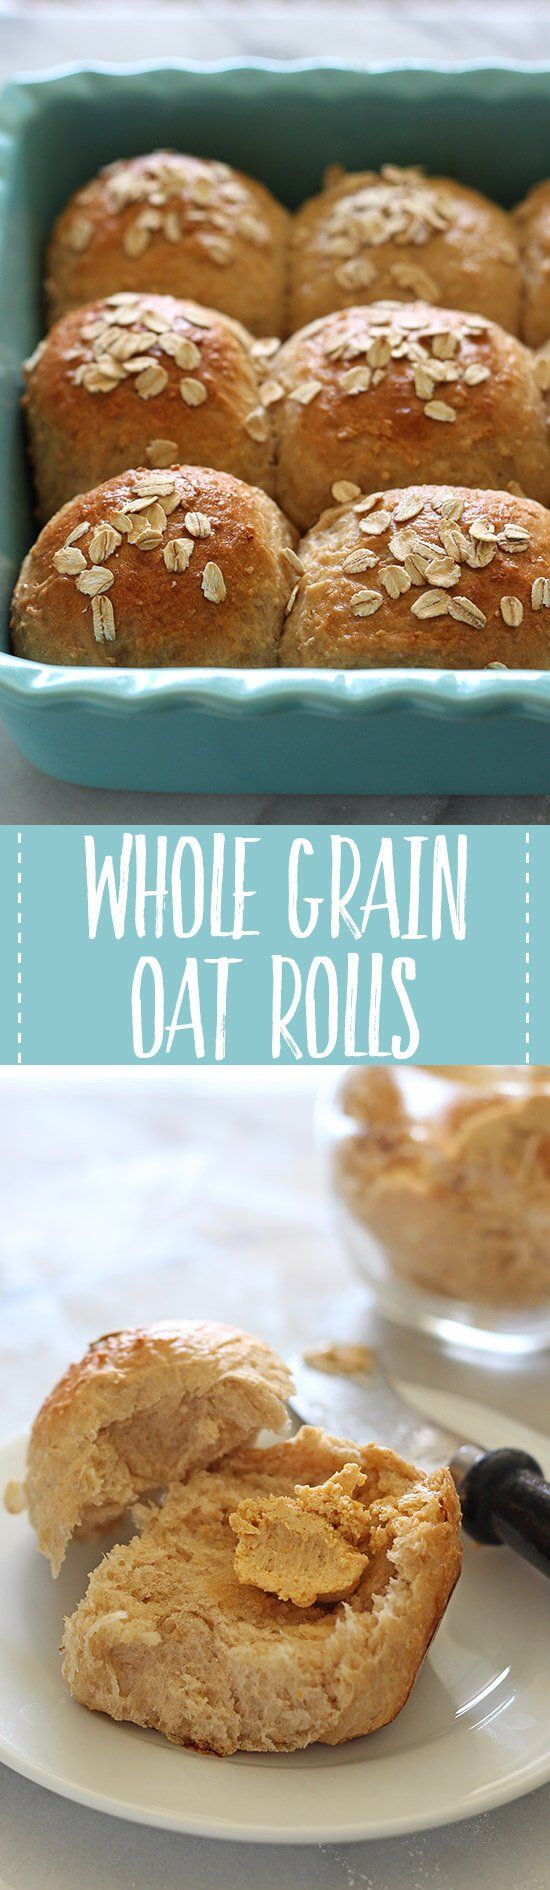 With these Whole Grain Oat Rolls, healthy bread doesn't have to taste bad! Anyone can make these surprisingly light, beautiful, and tasty dinner rolls.